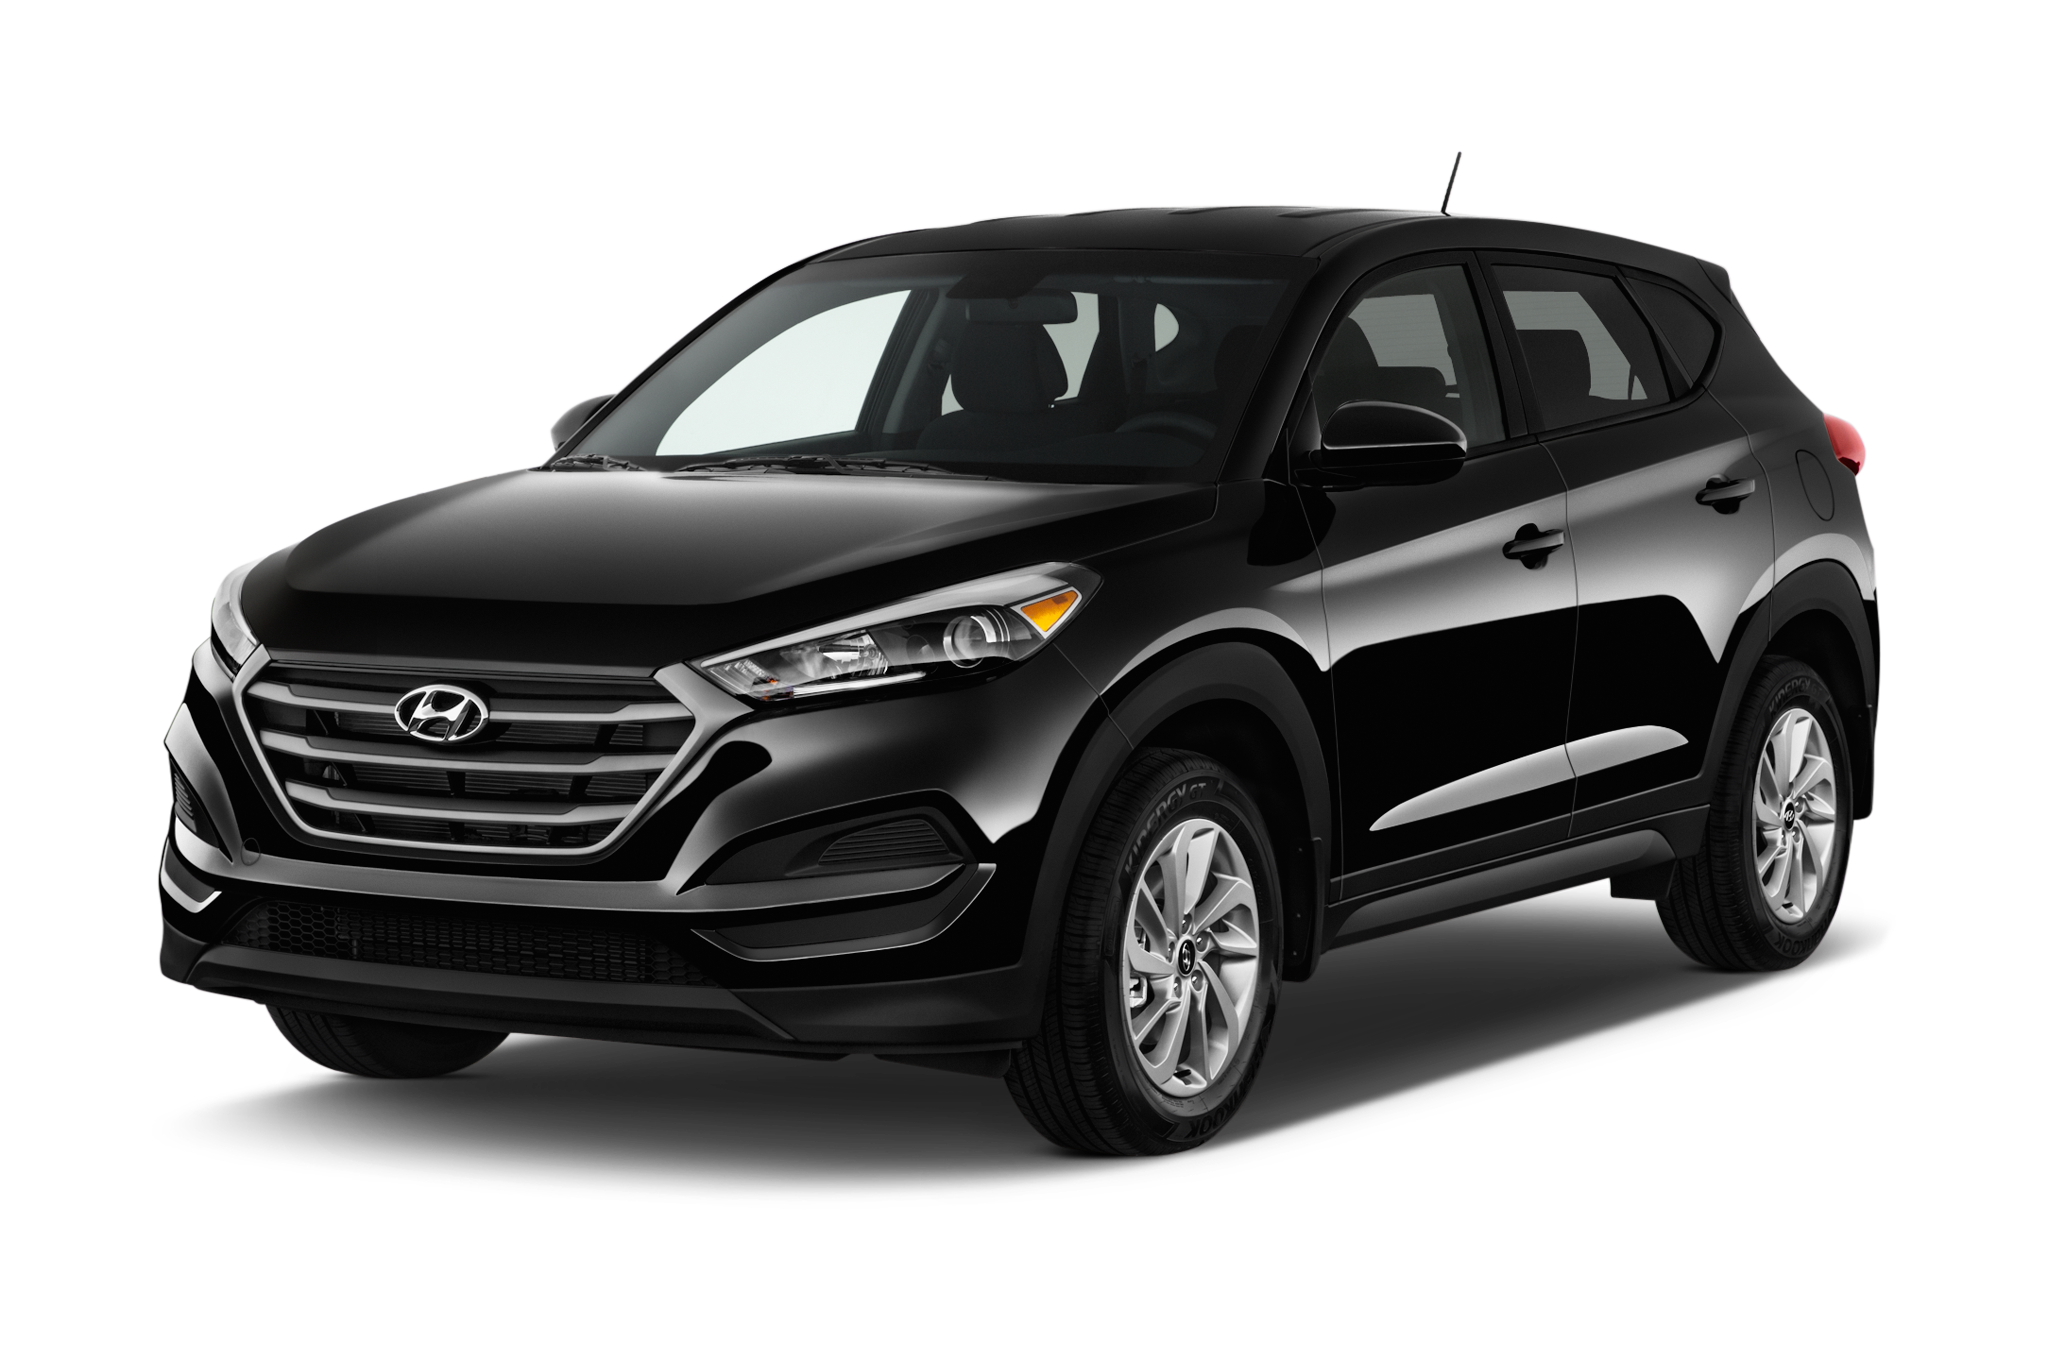 hyundai teams up with vaccar for extreme tucson sport sema concept automobile magazine. Black Bedroom Furniture Sets. Home Design Ideas